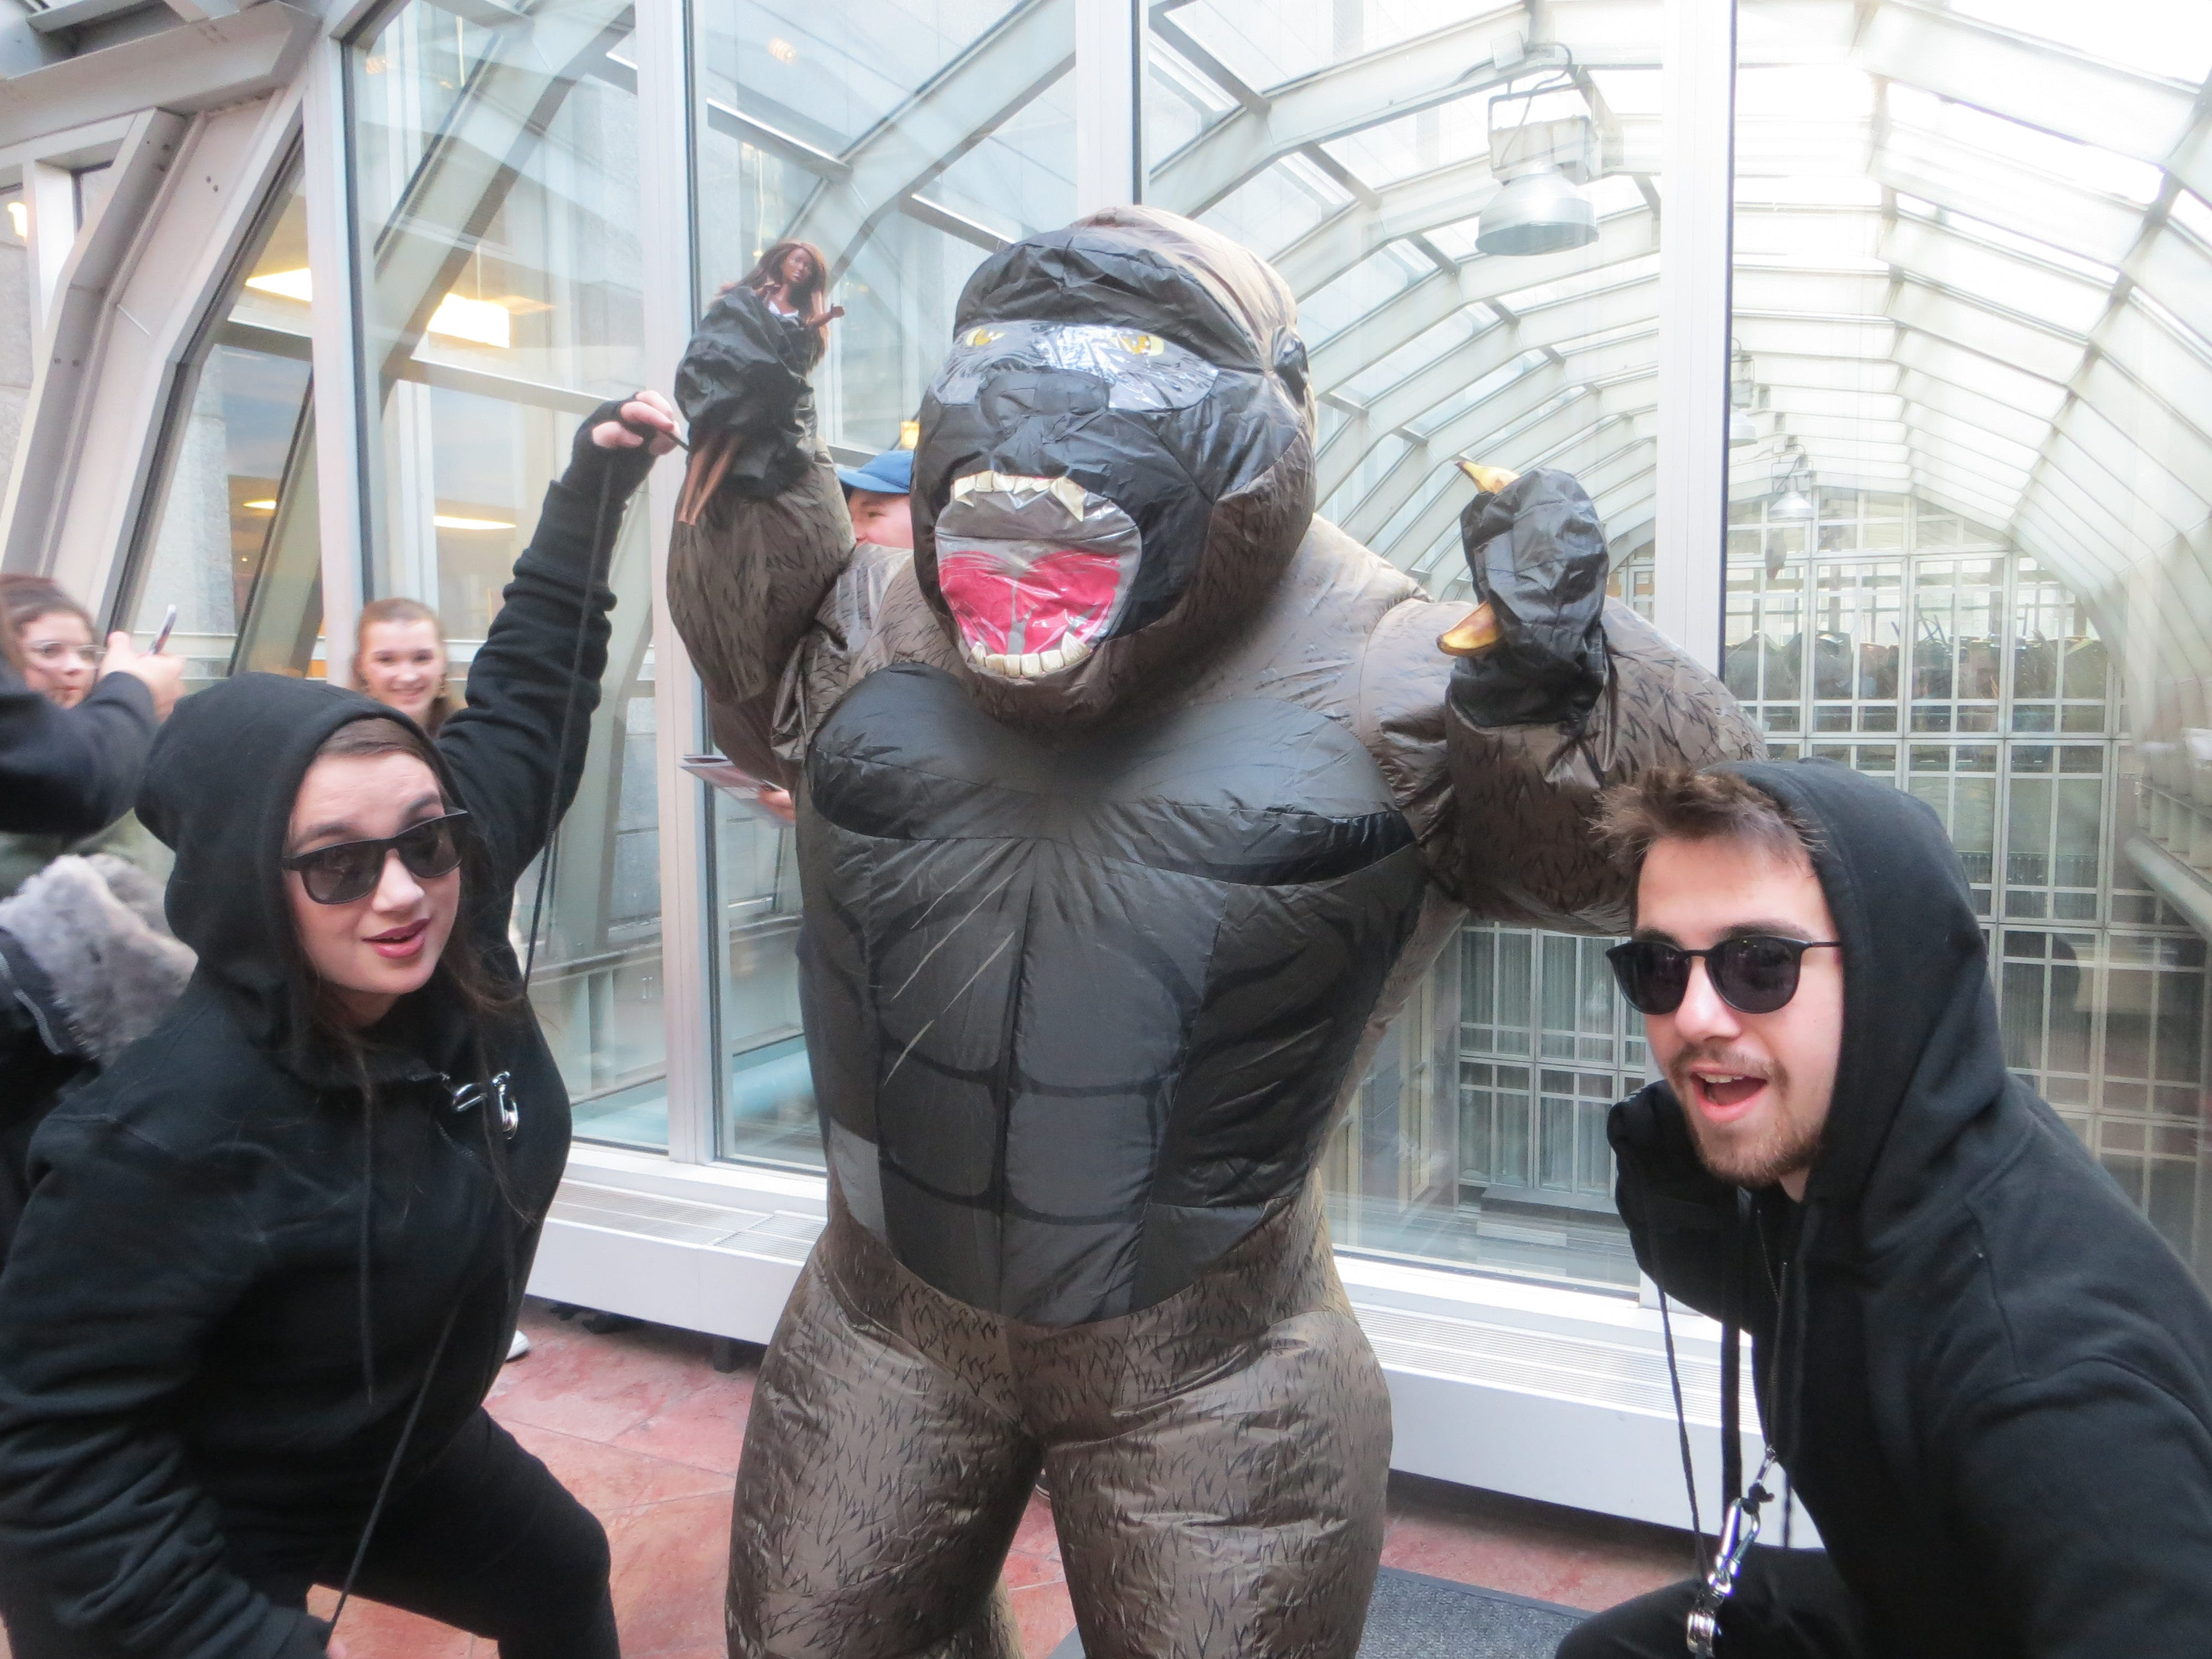 """King Kong"" cosplayers at BroadwayCon 2019, held Jan. 11 to 13, 2019, at the New York Hilton Midtown in Manhattan."